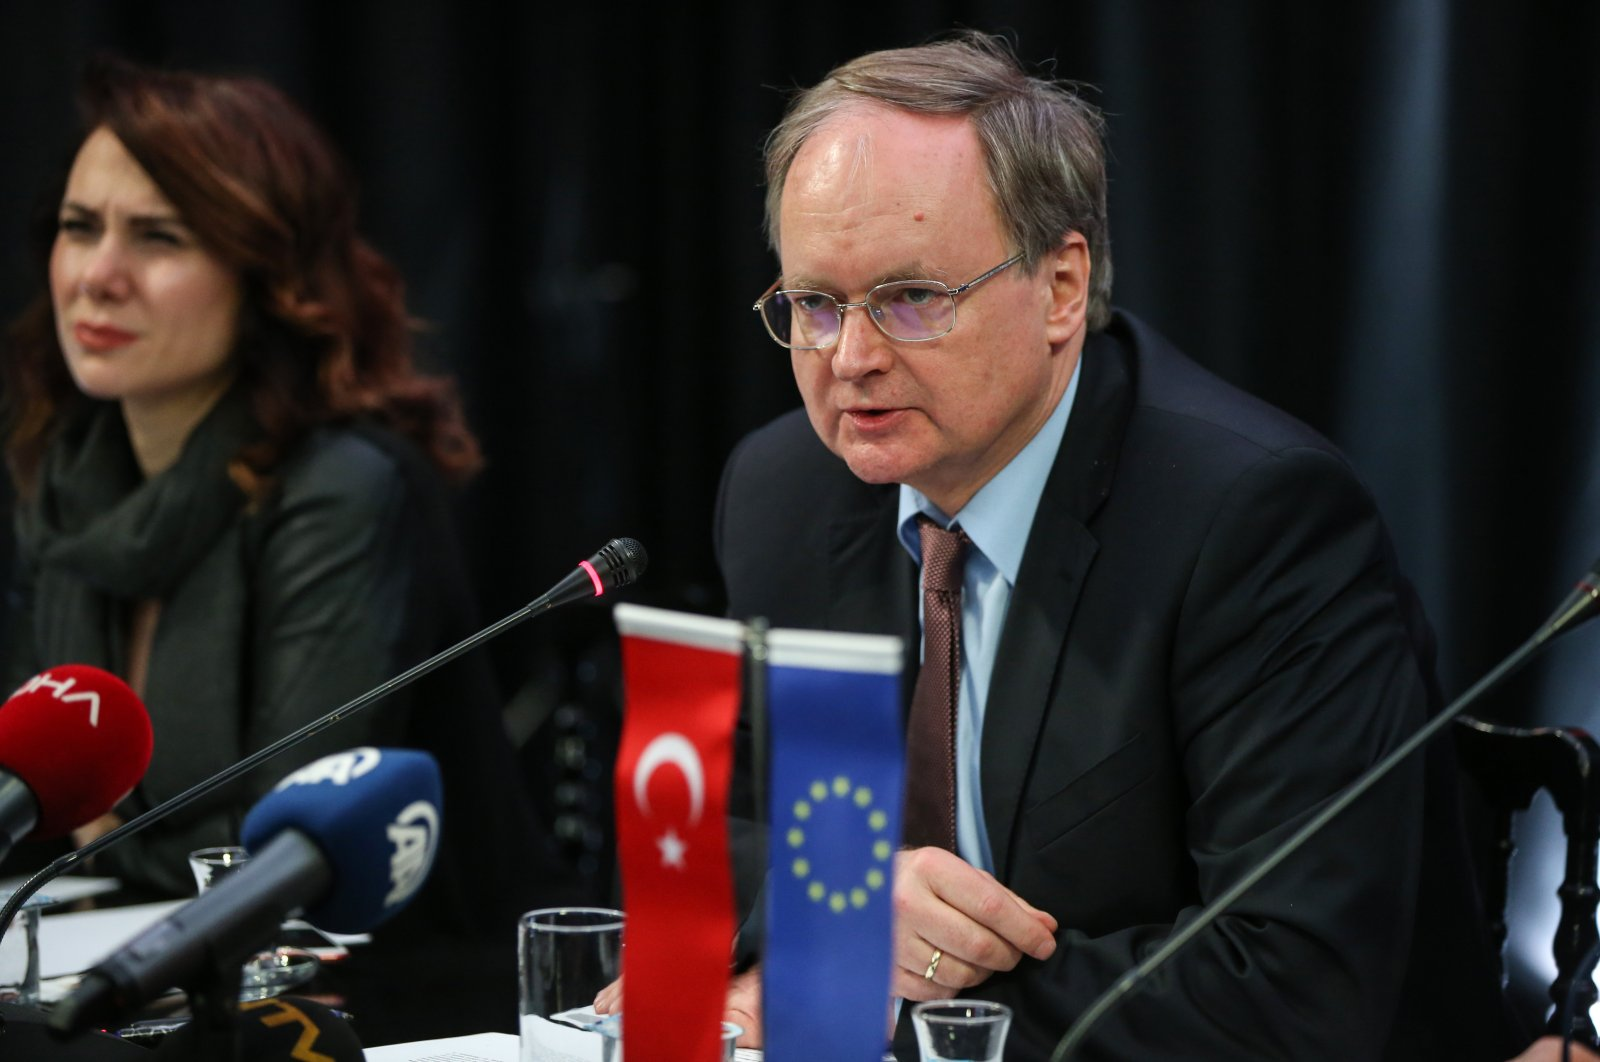 The head of EU delegation to Turkey, Christian Berger, speaks at a news conference on March 25, 2019. (AA File Photo)